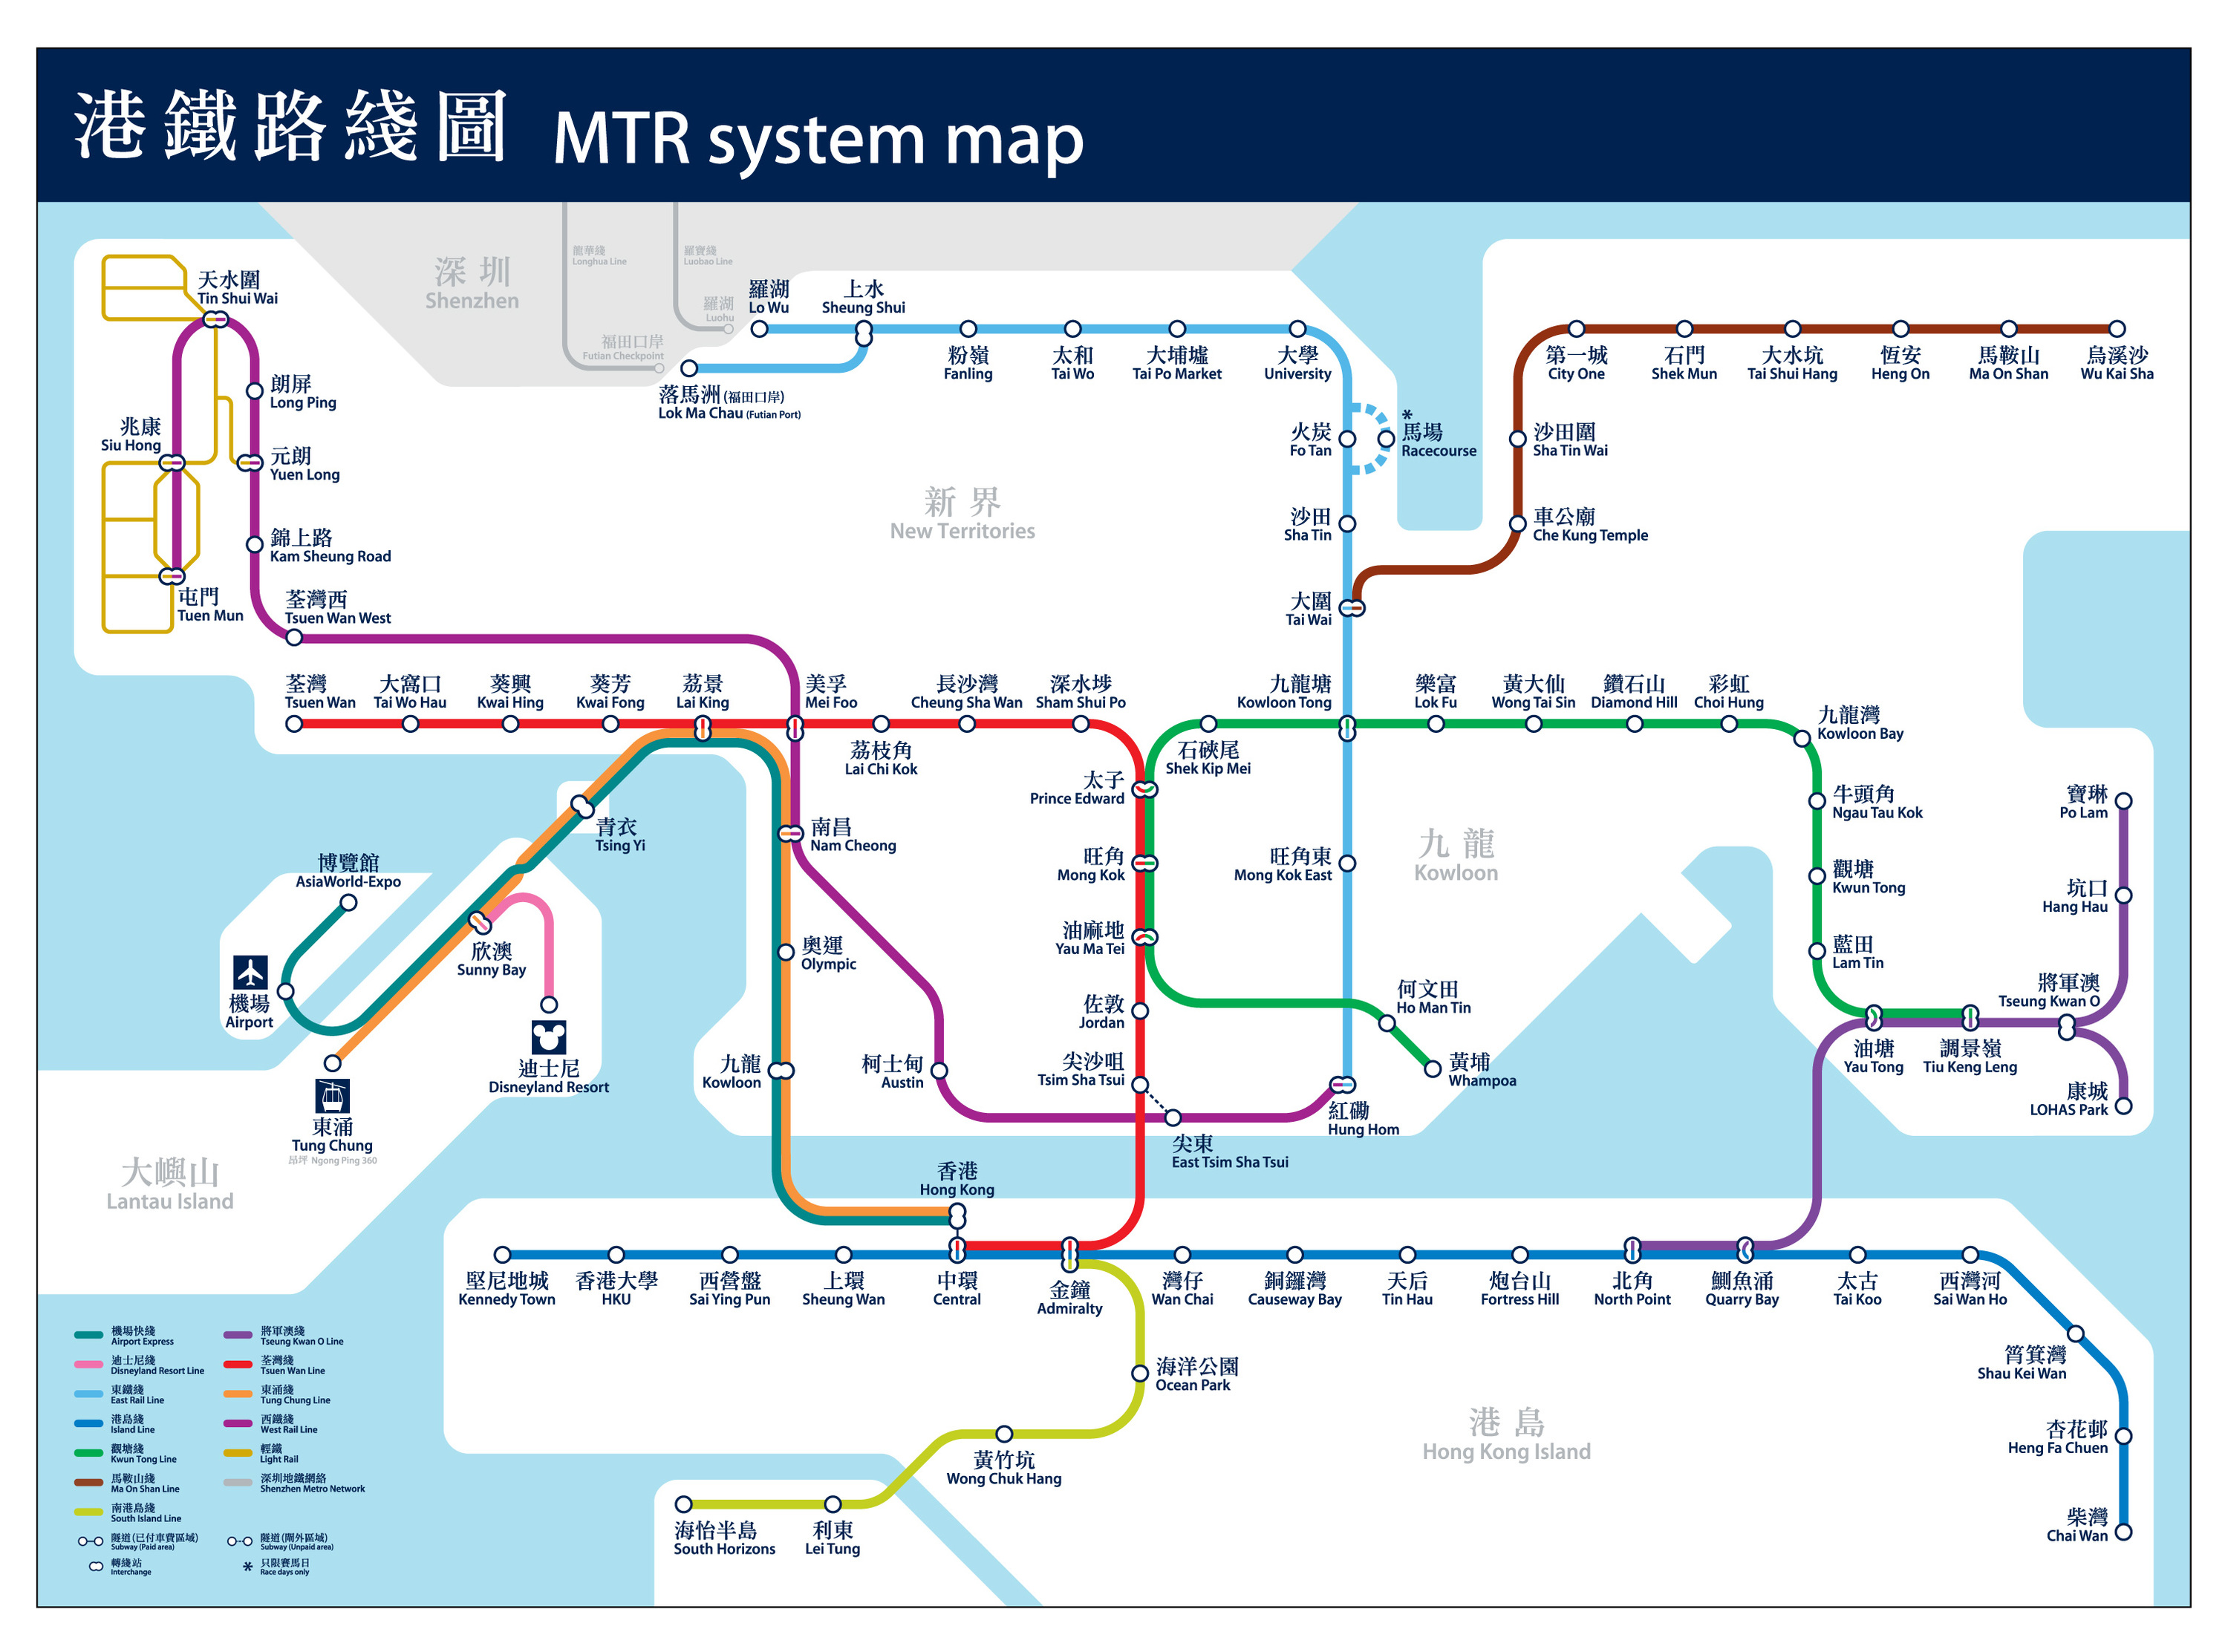 Hong Kong MTR map Mtr Map on sheung wan, metro de santiago map, tibet and surrounding area map, shenzhen metro, light rail, seoul metropolitan subway, mtu map, dubai metro, montreal metro, delhi mass rapid transit system, airport express, rapid transit, moscow metro, island line, tianjin metro, hung hom, port of shanghai map, septa map, hung hom station map, mus map, chongqing rail transit map, changsha metro map, massachusetts bay transportation authority map, west rail line map, calgary transit map, mc map, penn's landing map, tokyo subway, beijing subway, state railway of thailand map, mta map, shanghai metro, san francisco muni map, hong kong tramways, hk map, tokyo metro, rio de janeiro metro map, guangzhou metro, barents sea map,